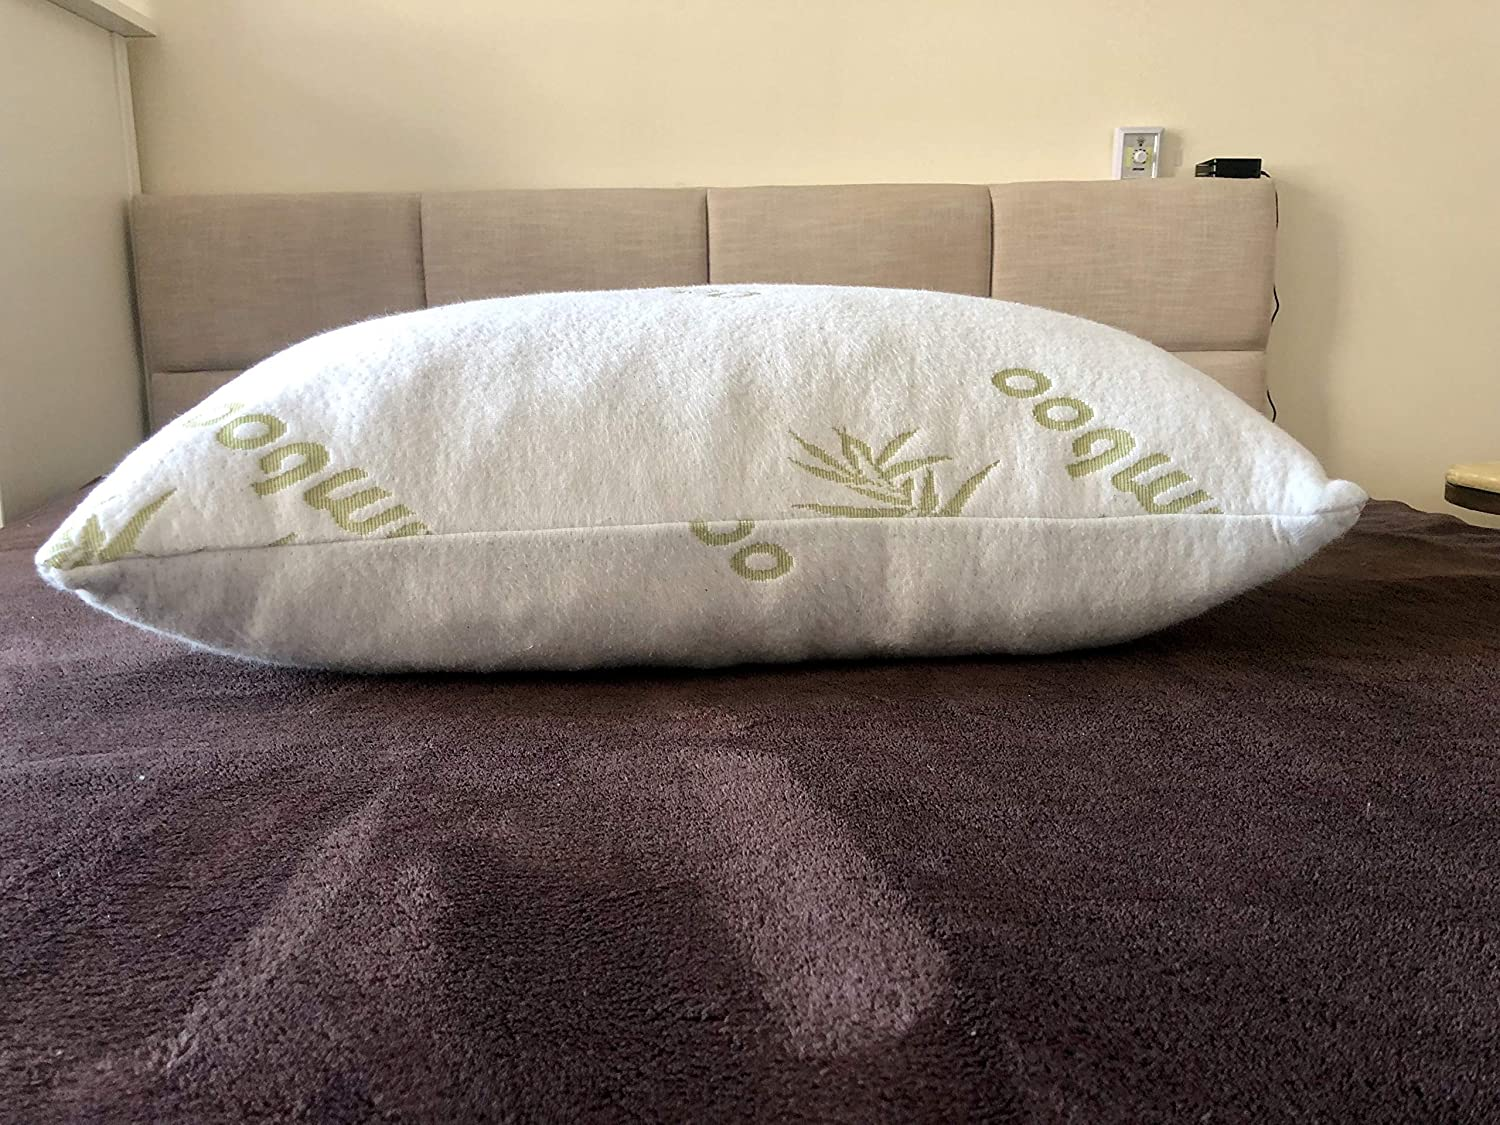 Bamboo Body Pillow Lumbar Support//Pregnancy Bamboo Body Pillow 54 Long Memory Foam Infused with Copper Ions Removable Bamboo Cover